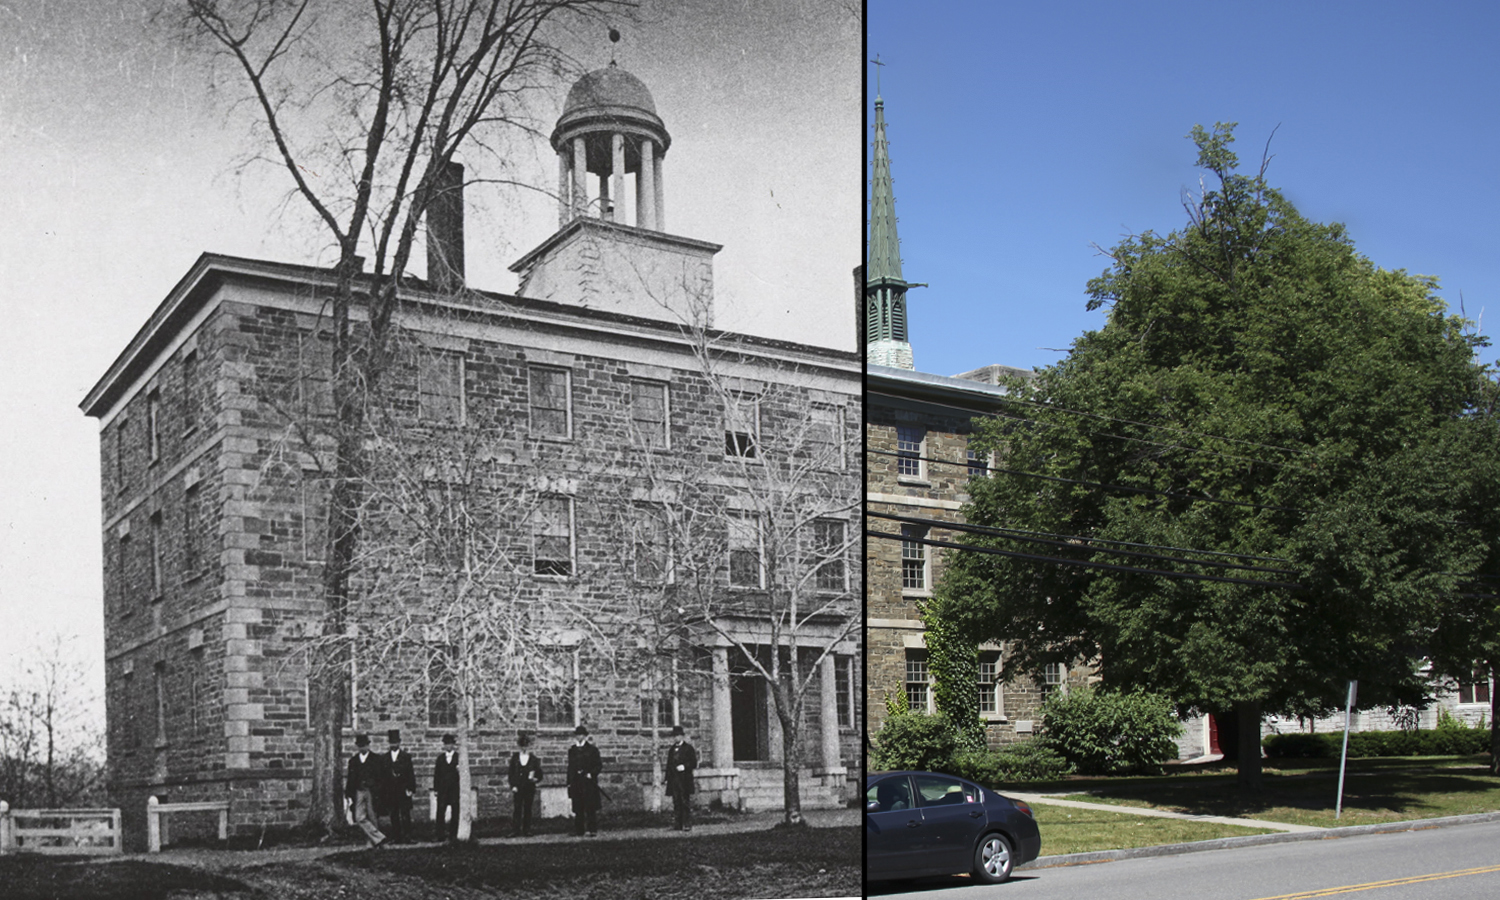 Geneva Hall, the college's first building, was constructed in 1822. Originally serving as classrooms, it is now used as an all-male residence hall.